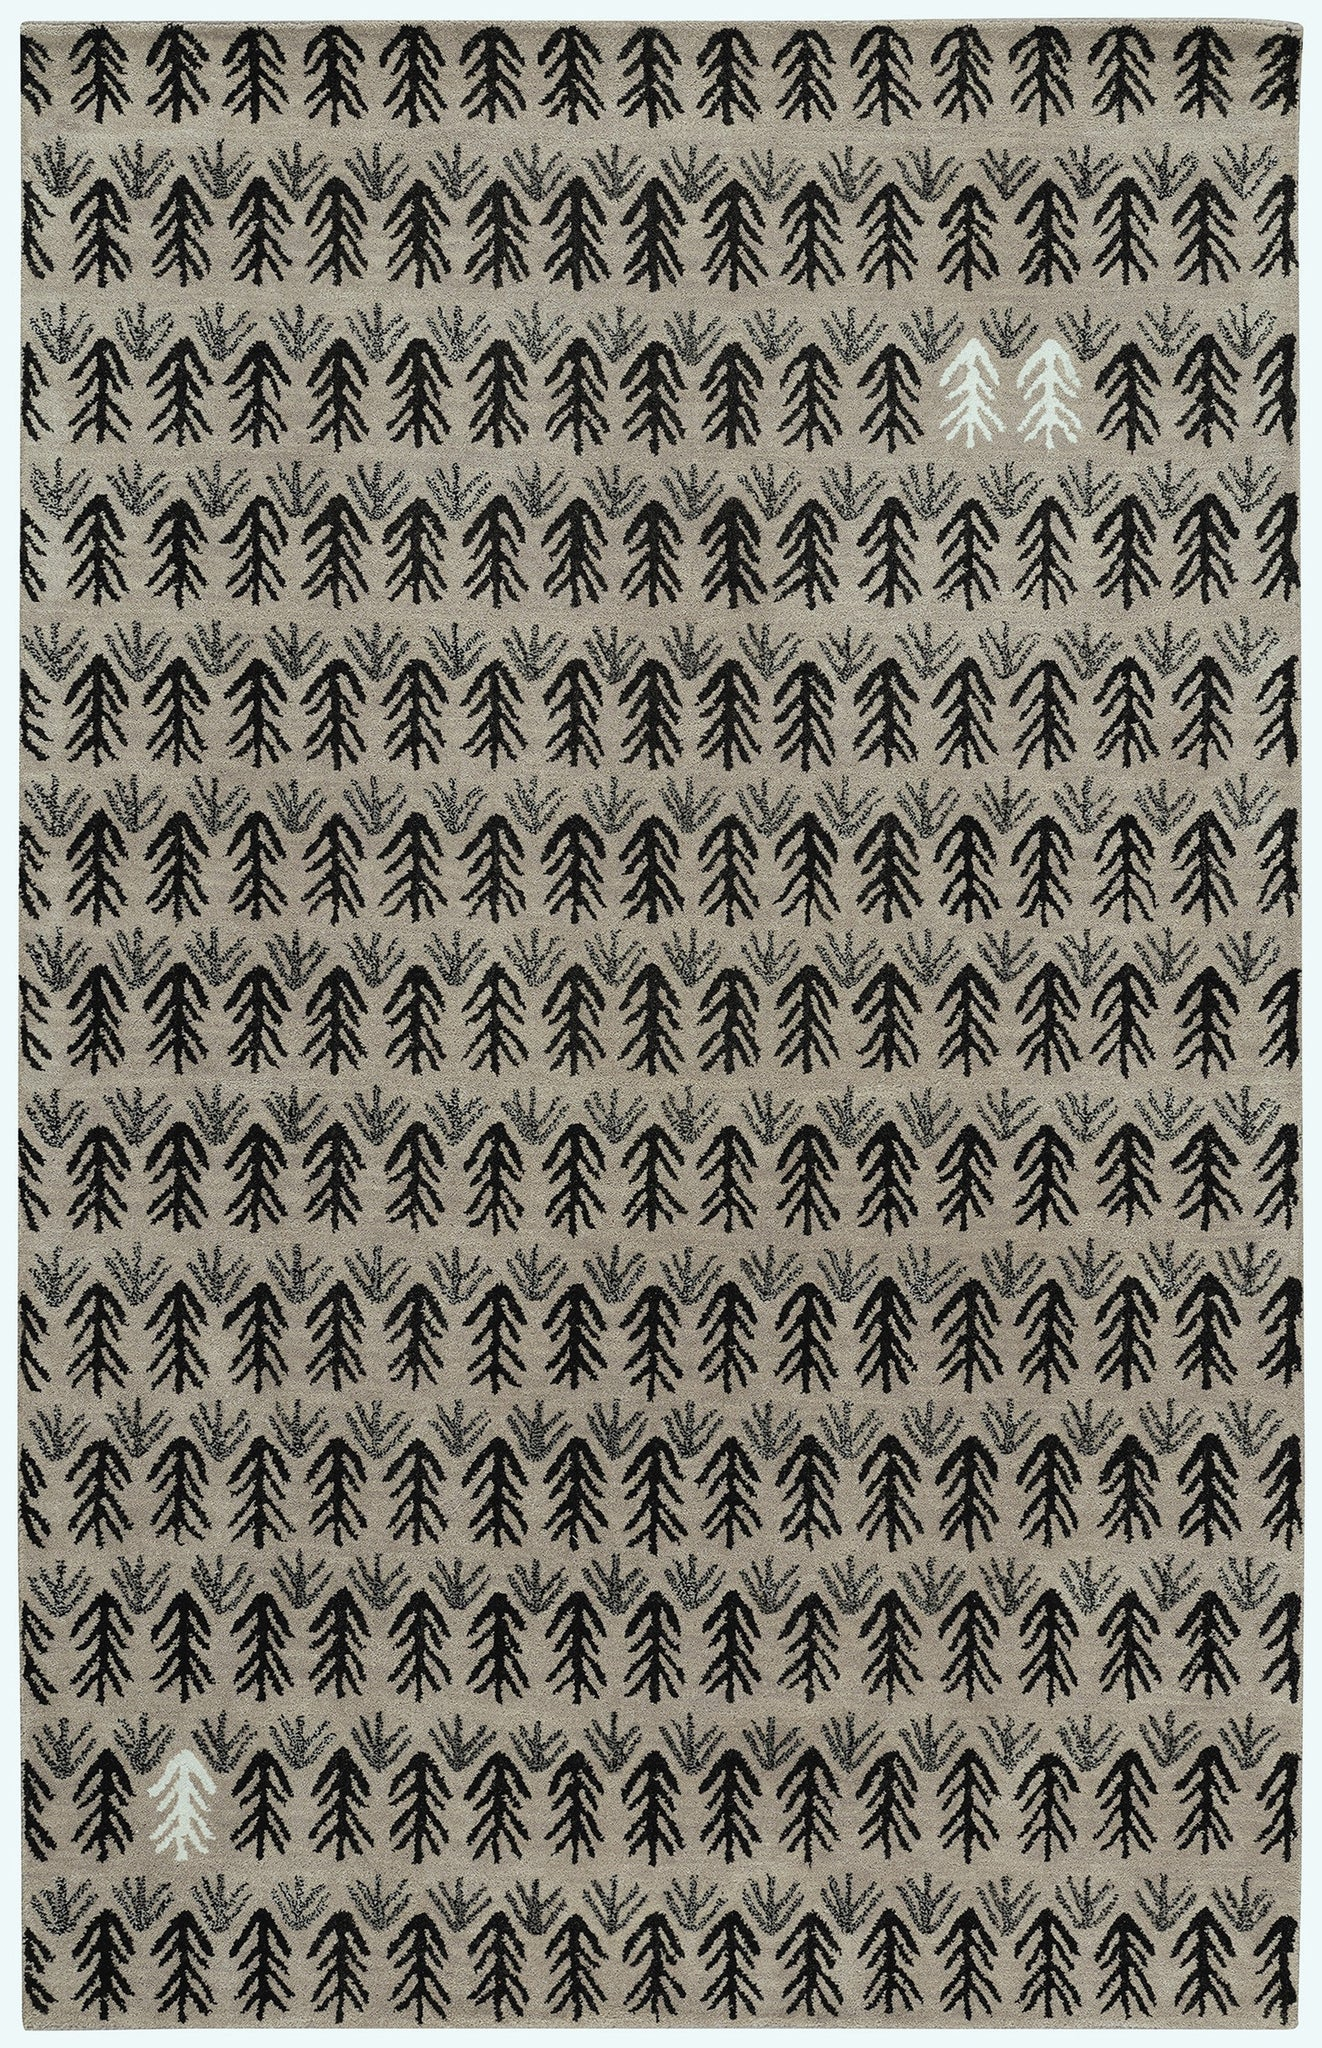 Capel Twigs 3270 Black 350 Area Rug by Genevieve Gorder main image